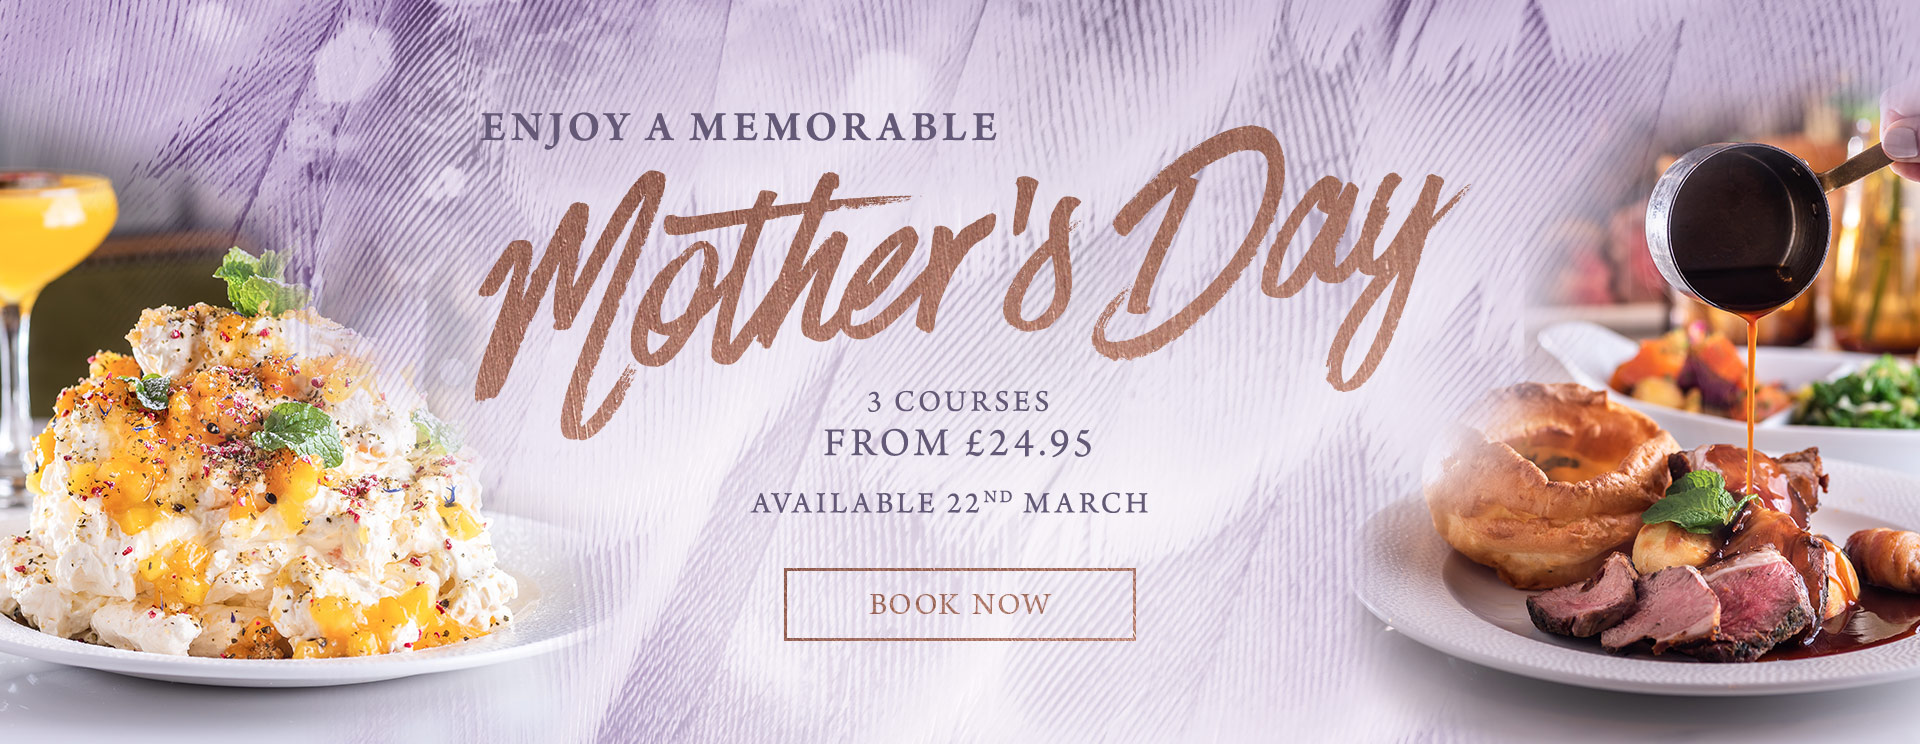 Mother's Day 2019 at The Tudor Rose